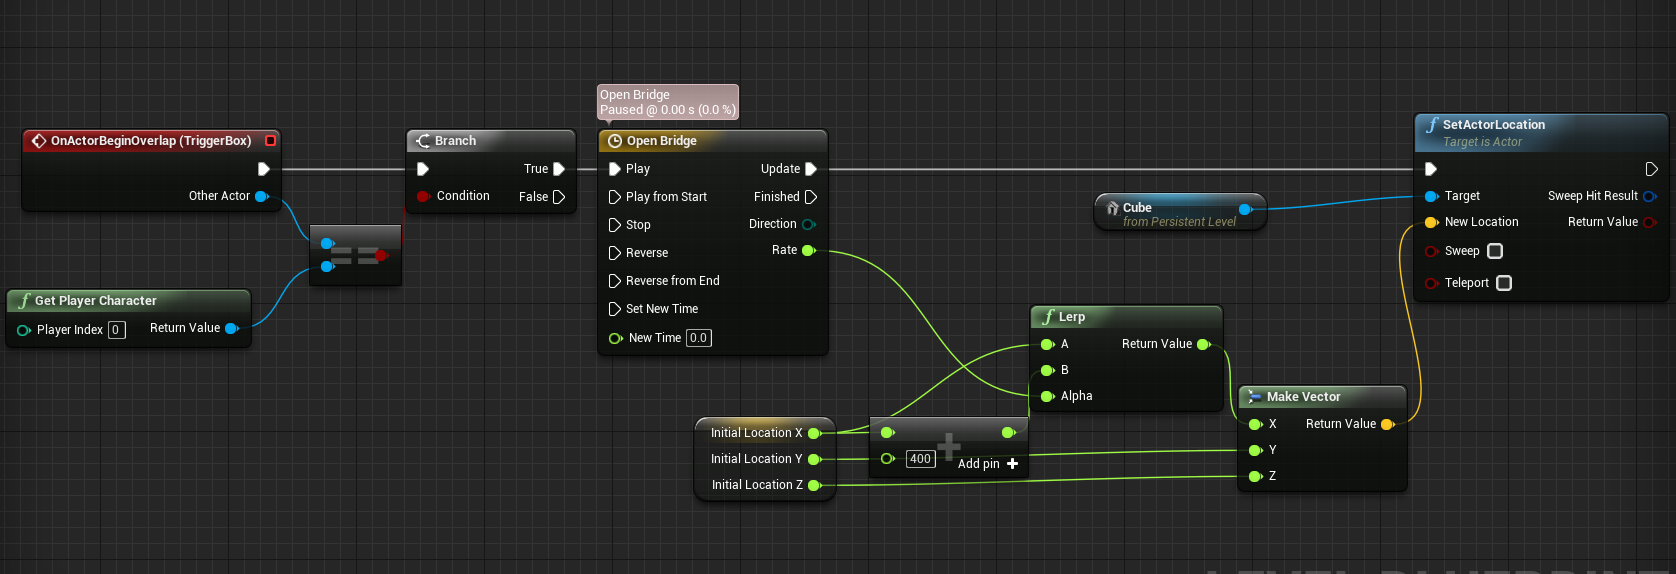 Using timeline animations in unreal engine 4 blueprint basics using timeline animations in unreal engine 4 by creating a simple bridge animation using blueprints malvernweather Images